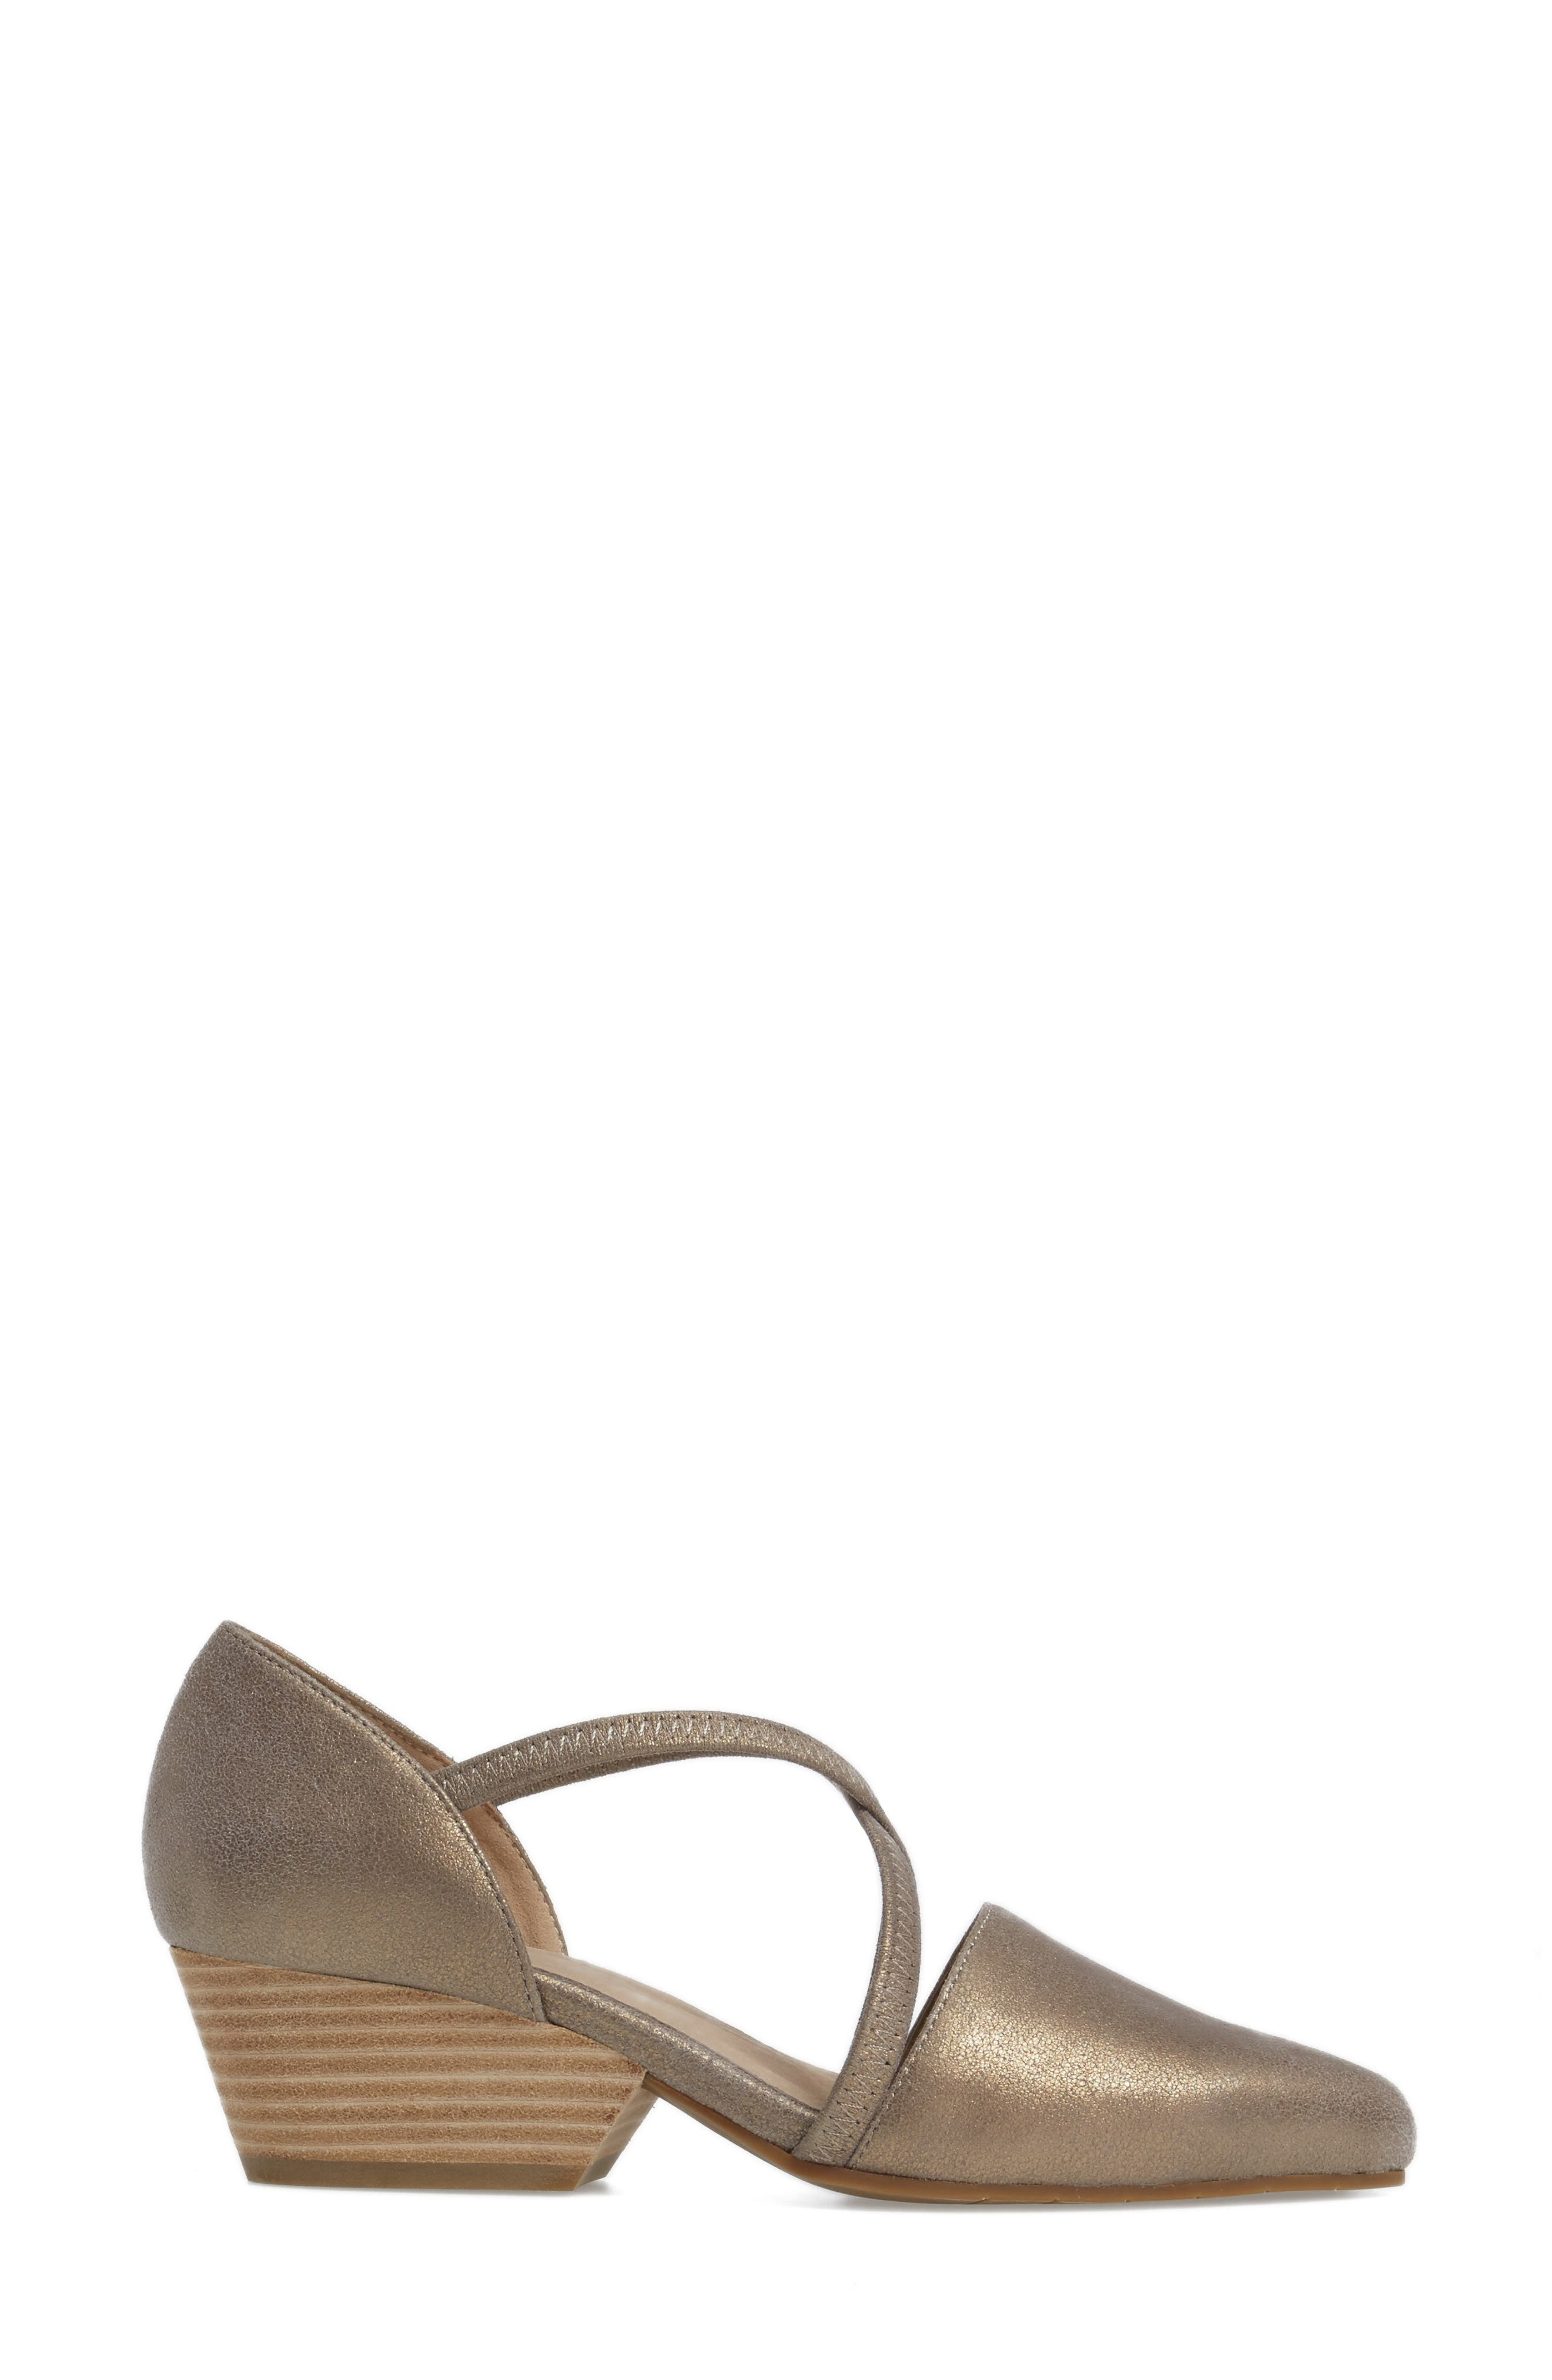 Alternate Image 3  - Eileen Fisher Poet Crisscross Pump (Women)